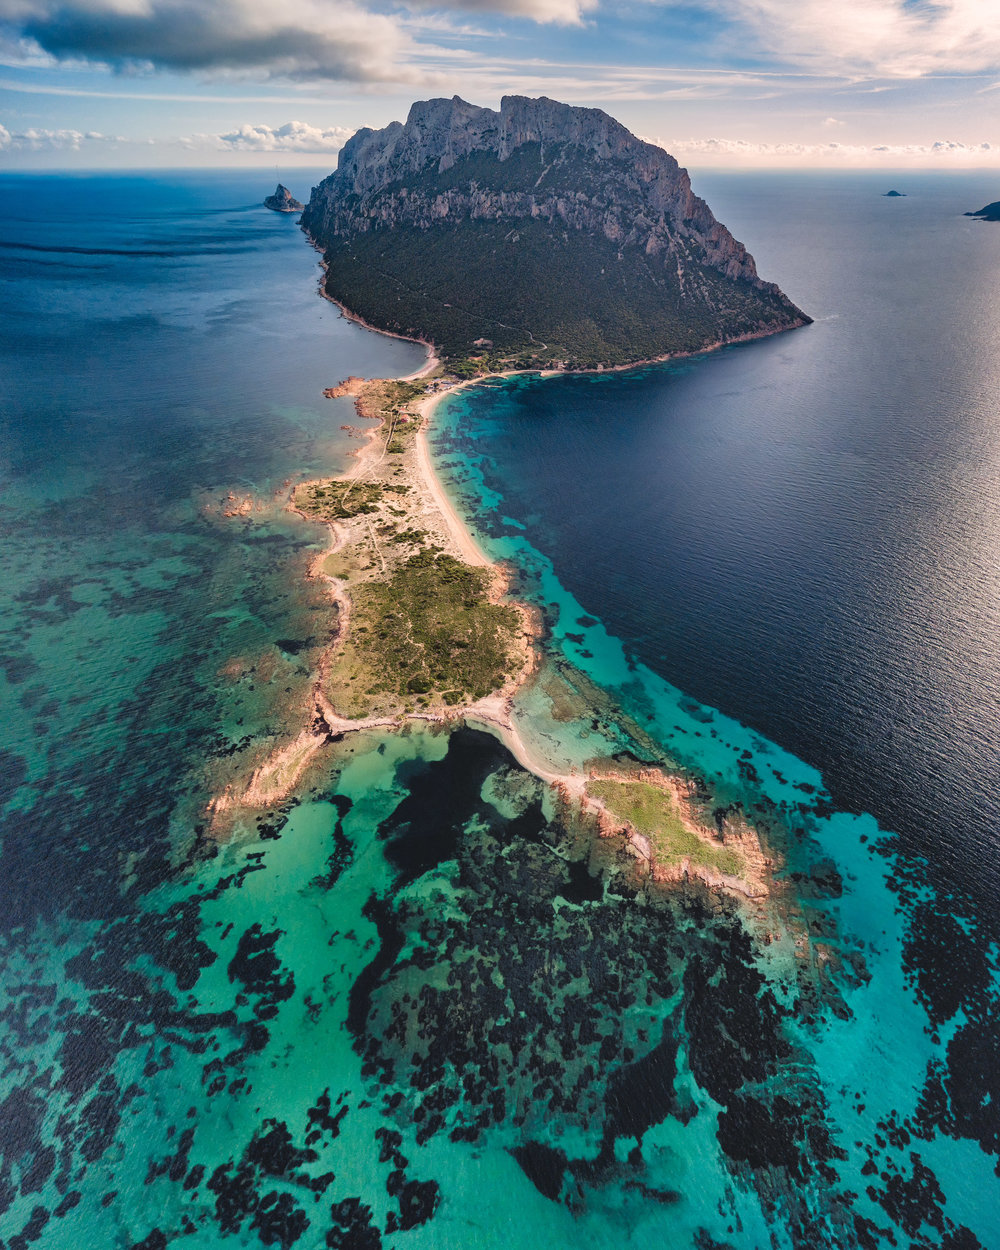 Aerial Photography sessions with drones - The crystal clear water of Sardinia and the colored rocks and cliffs offer an incredible opportunity for aerial photography. Red, white, gray and black rocky formations create a stunning mix of colors and shapes when they encounter the turquoise water of the Mediterranean. During our Sardinia Photo Tours we will have two dedicated sessions with drones to offer you a direct experience with this new discipline that allows to observe and admire our world from an unusual point of view. So many new possibilities to explore from above.